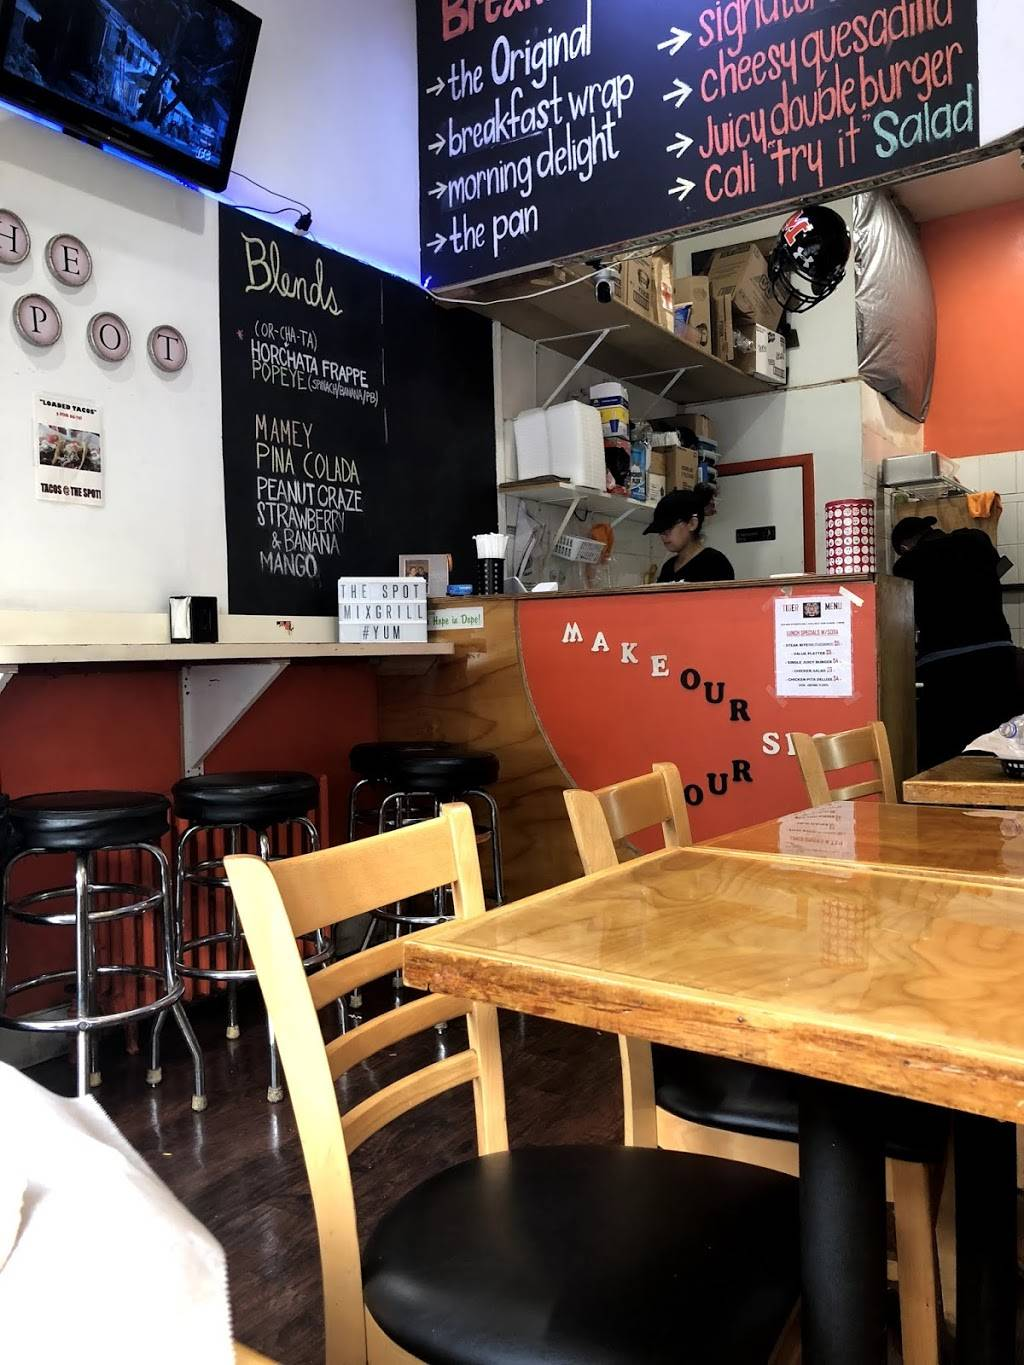 The Spot Mix Grill | restaurant | 5310 Park Ave, West New York, NJ 07093, USA | 2018677768 OR +1 201-867-7768